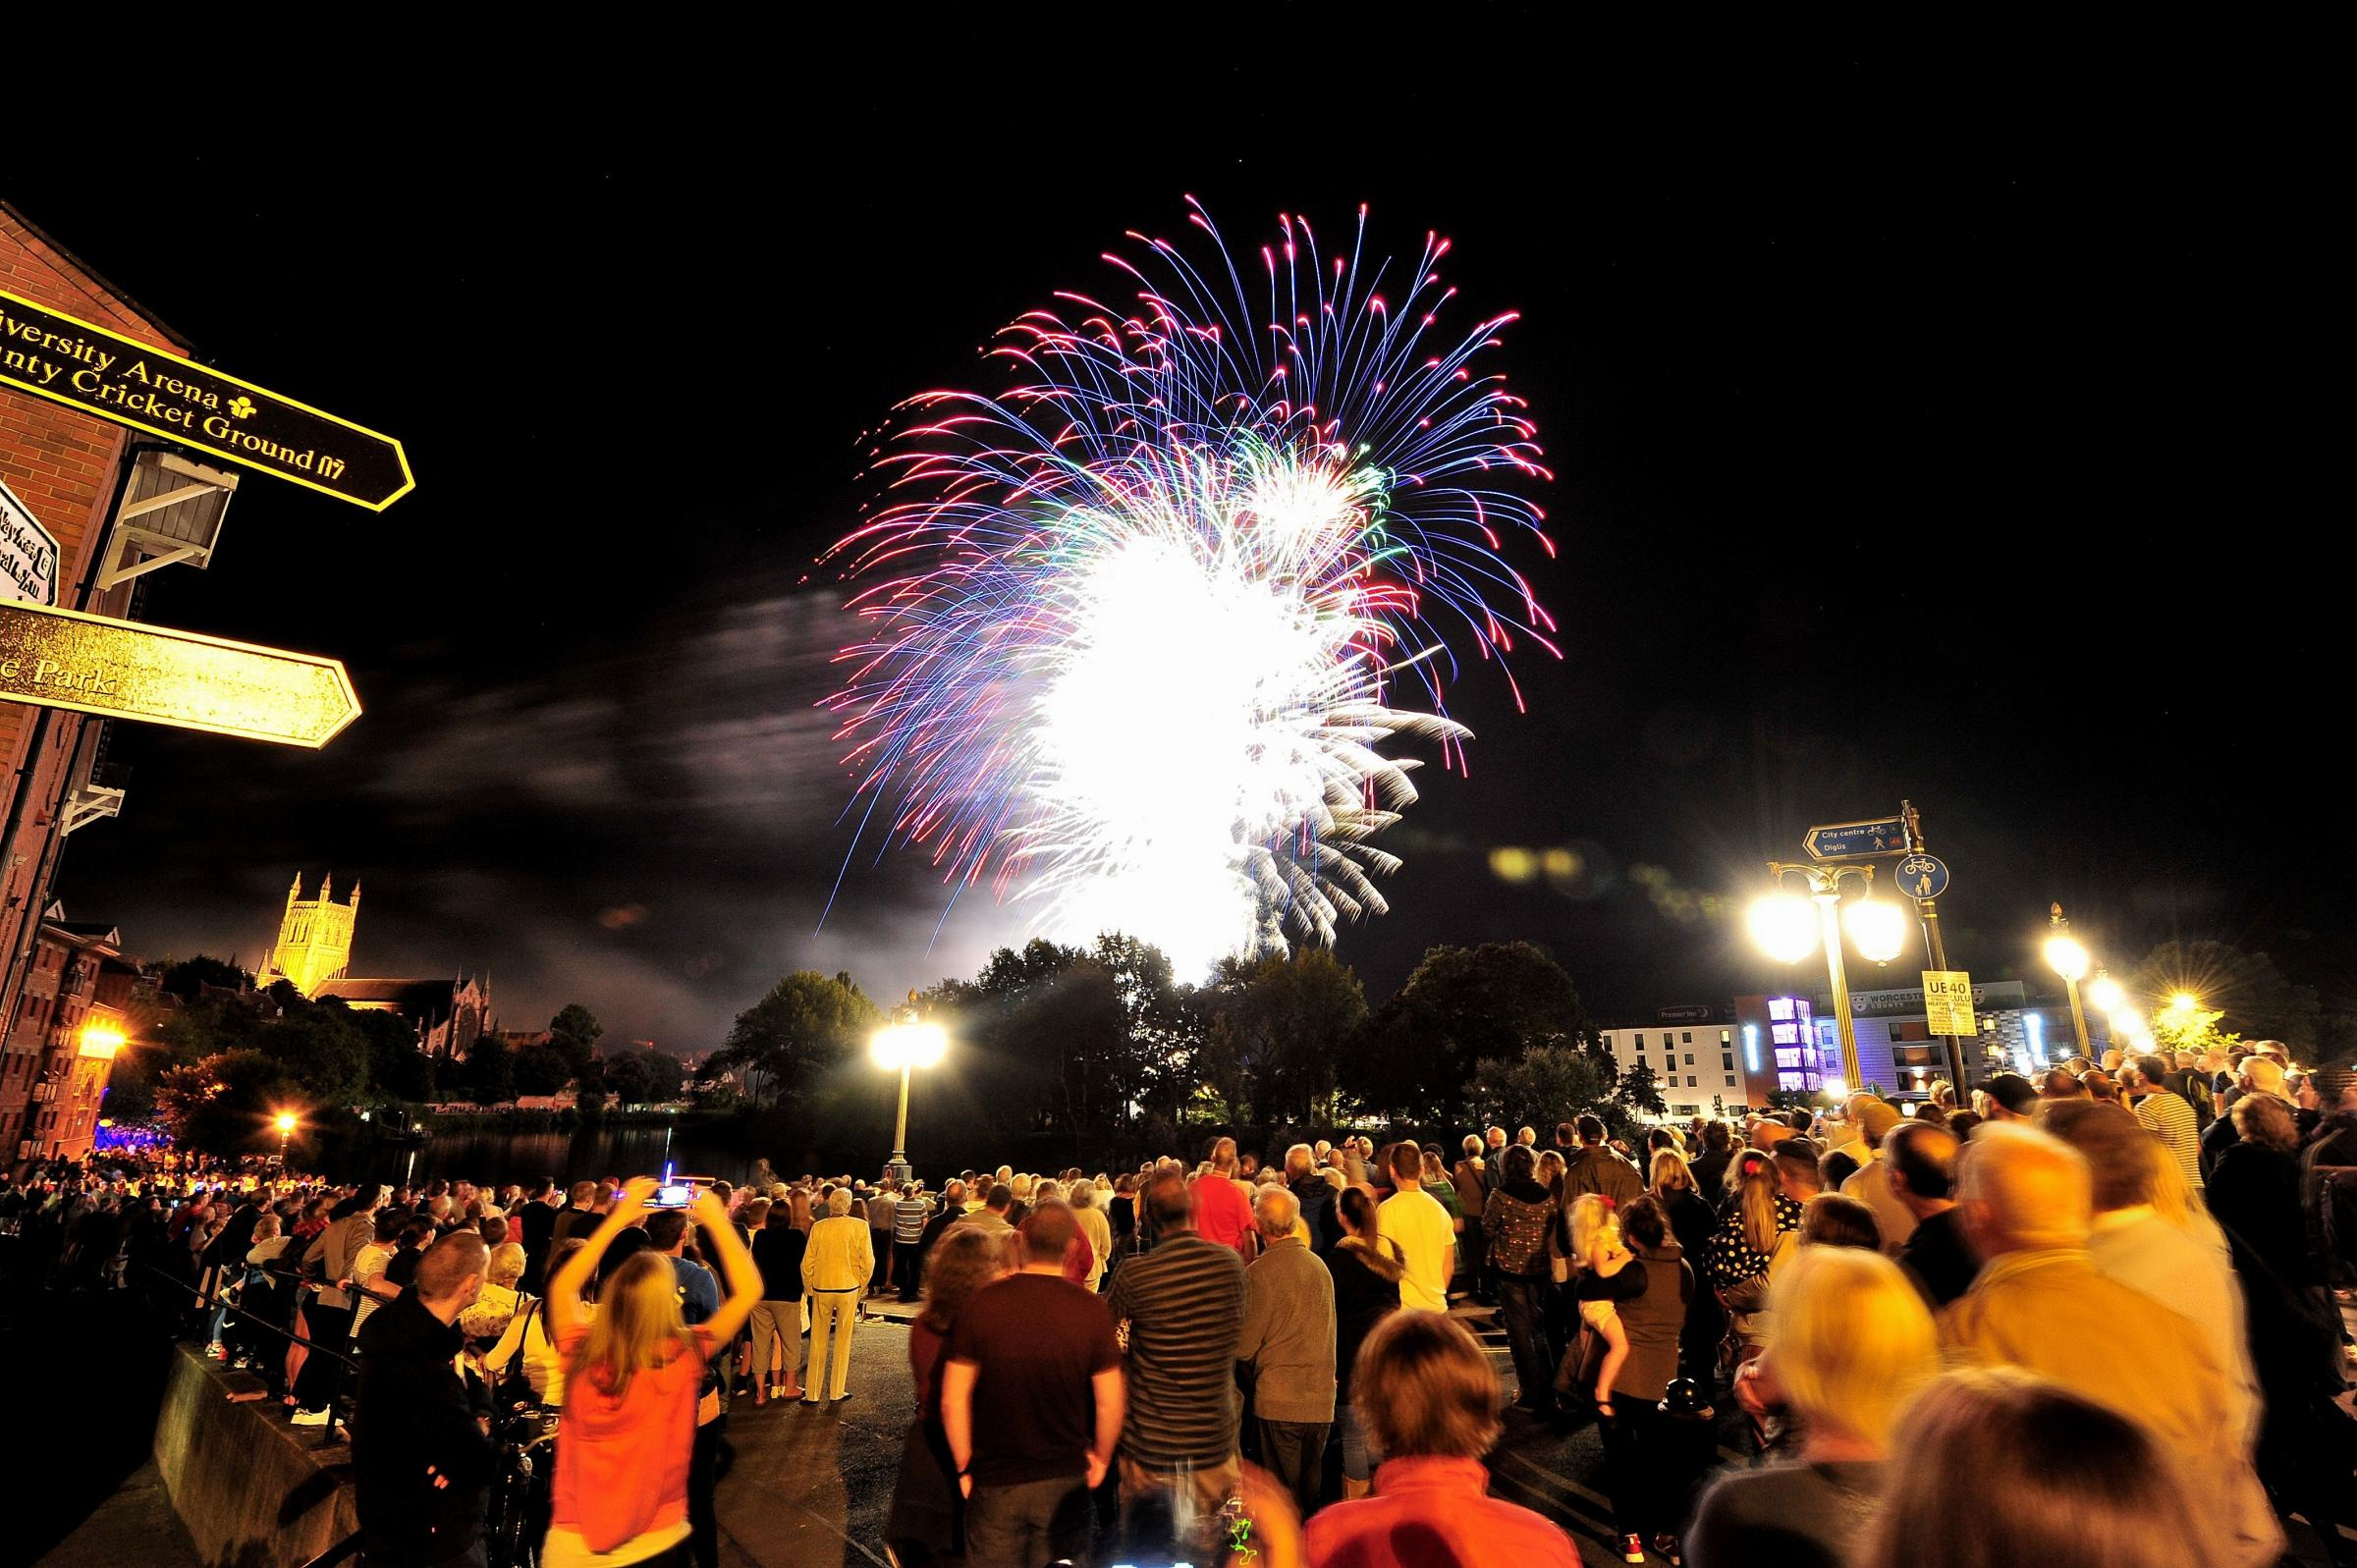 Fireworks scrapped for this year's Worcester Festival